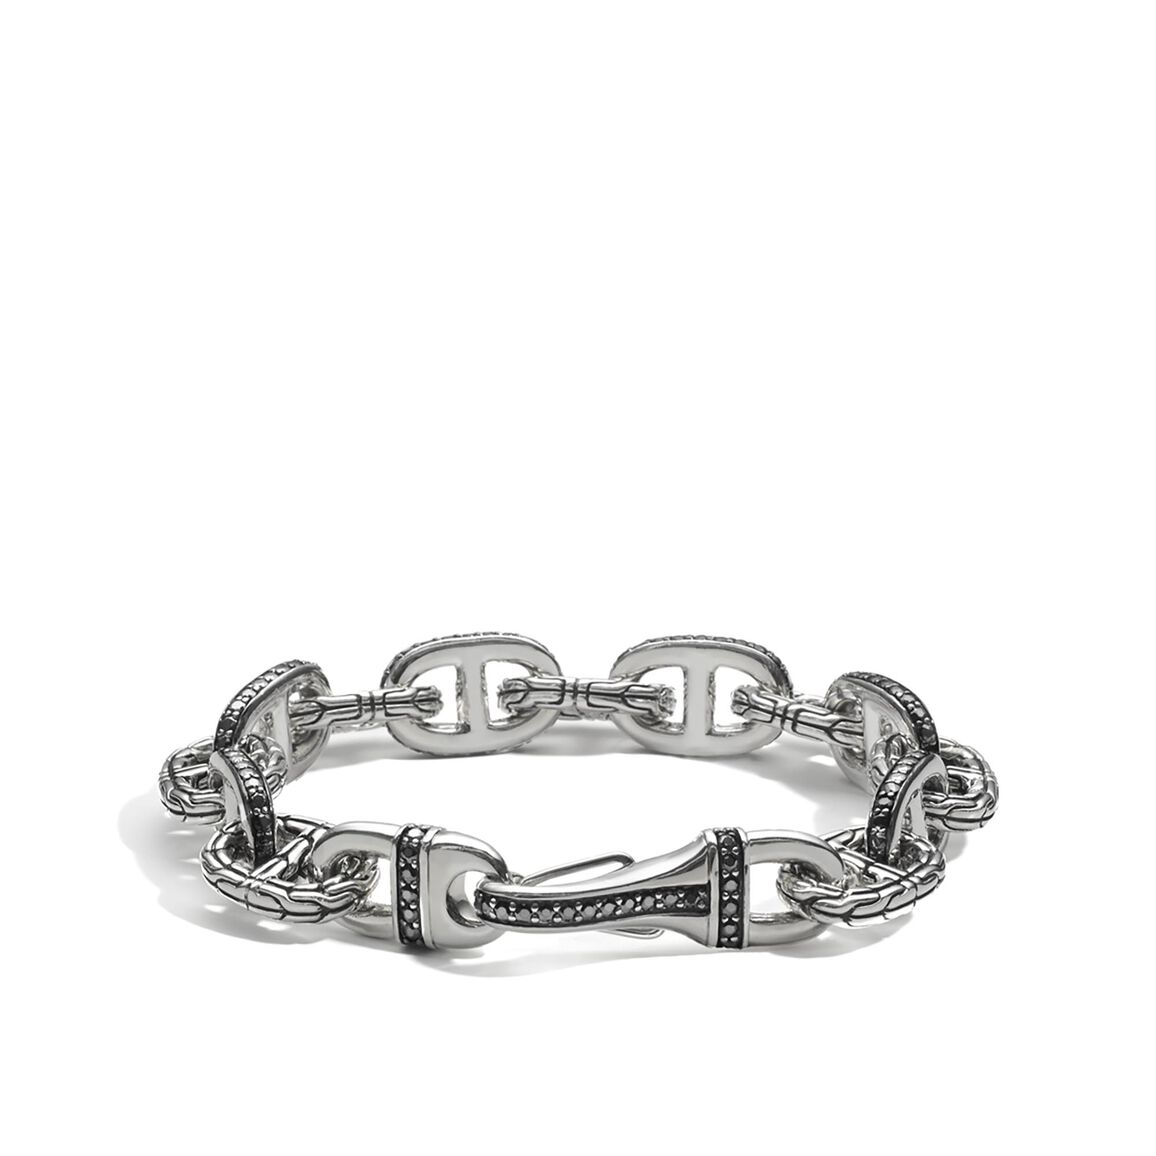 Classic Chain 13.5MM Link Bracelet in Silver with Gemstone